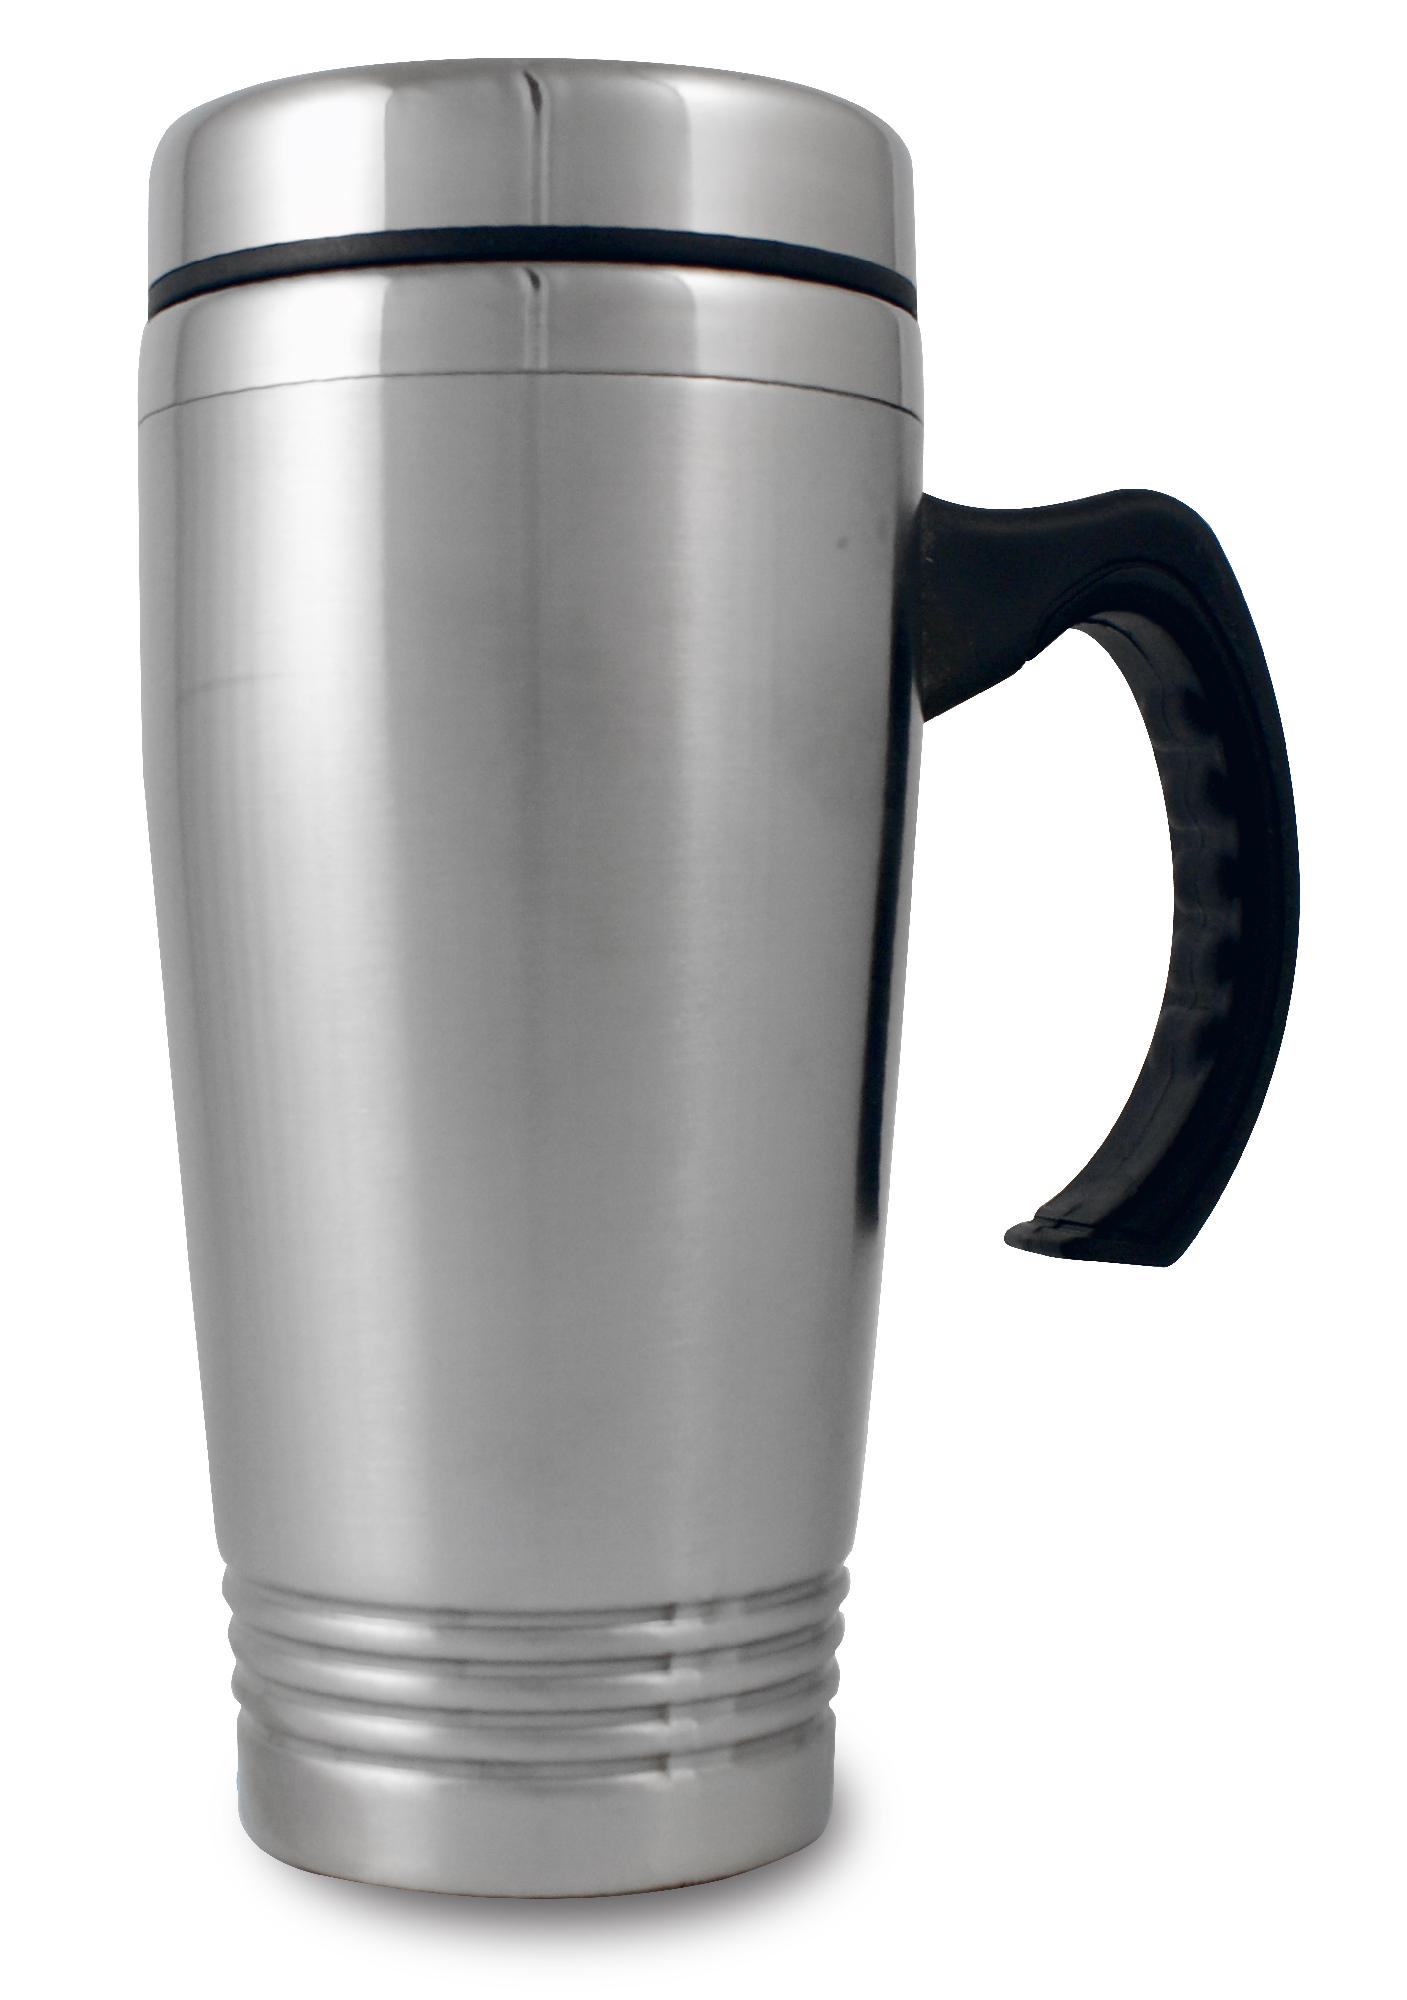 Stainless Steel Inside & Outside Travel Mug